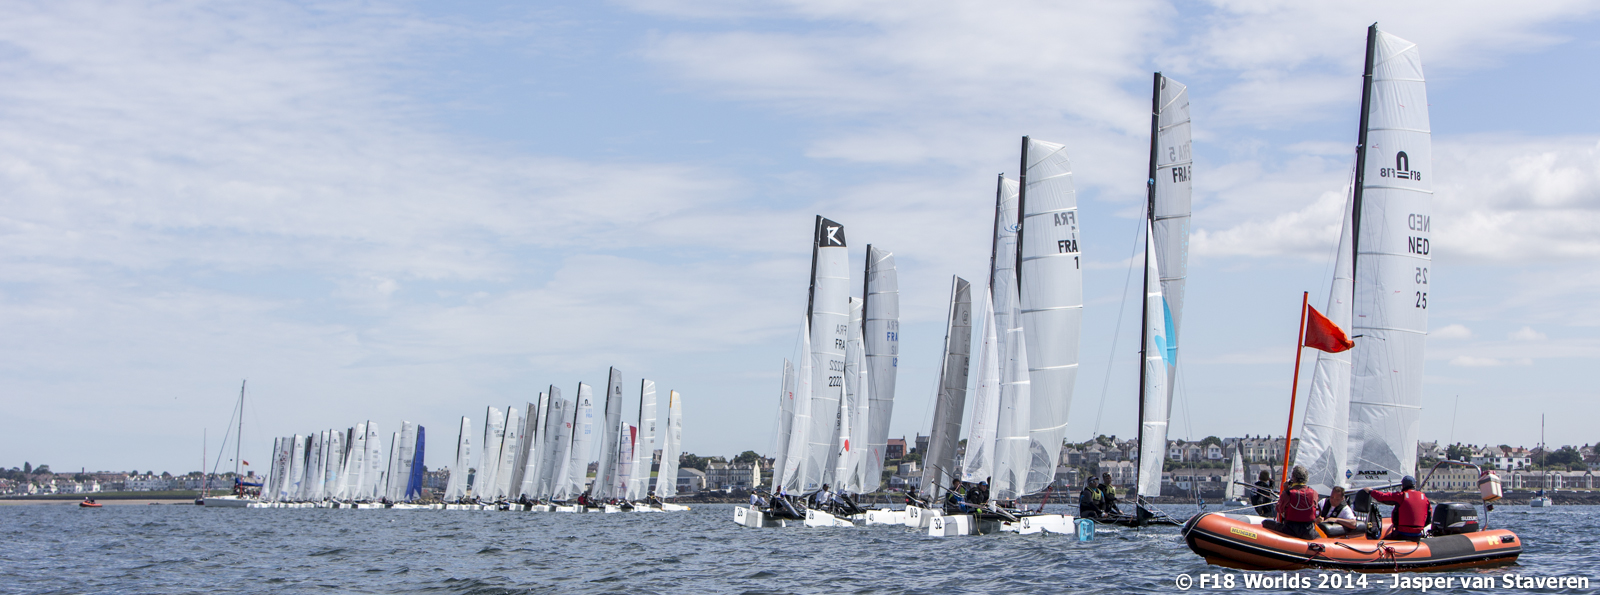 F18 Worlds Thursday 10-07-2014-1762